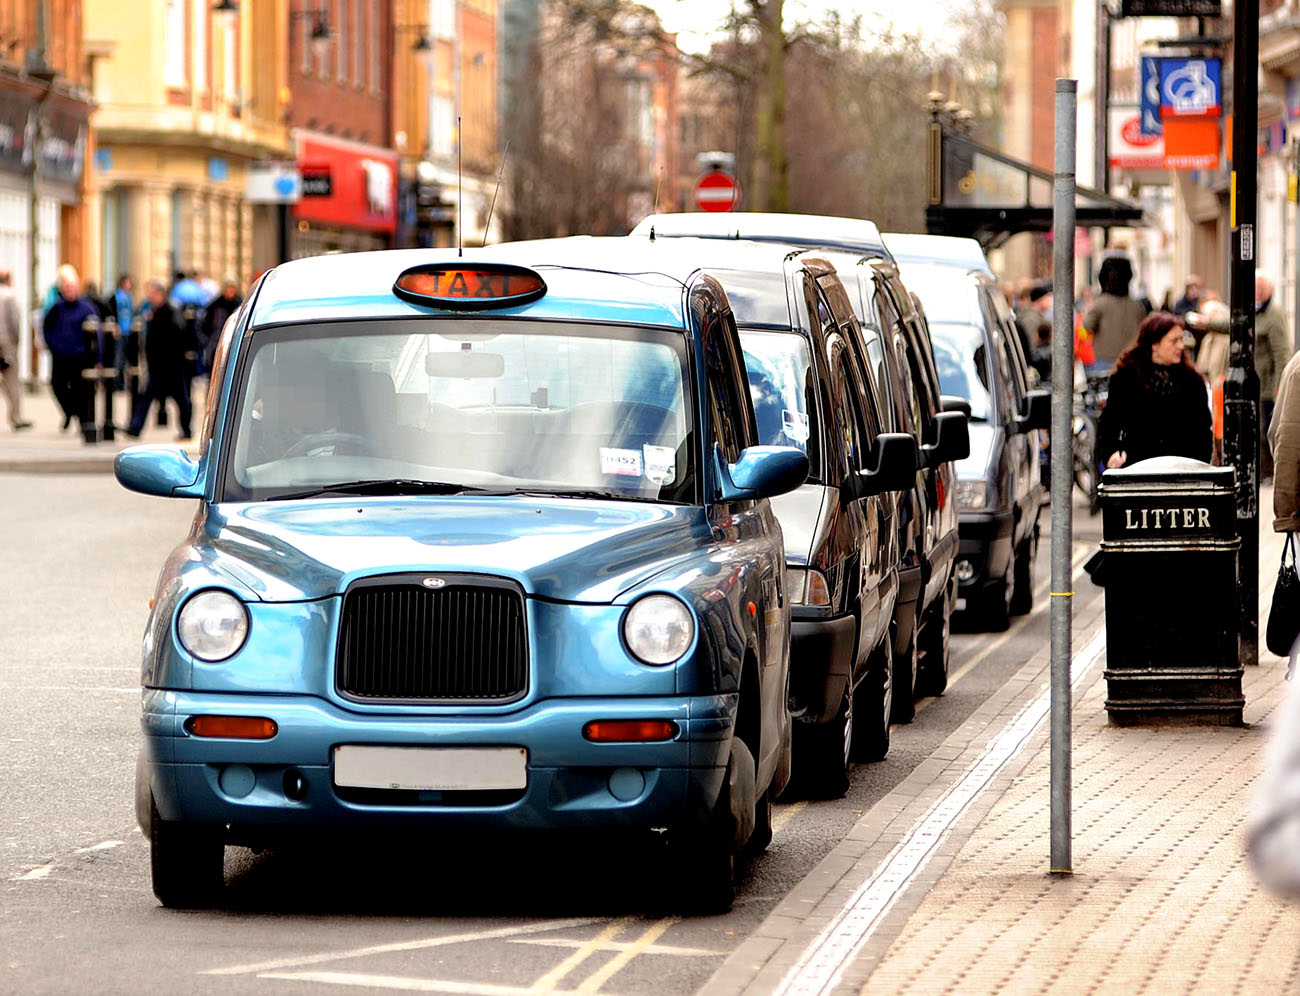 Few claims for taxi refunds after council blunder